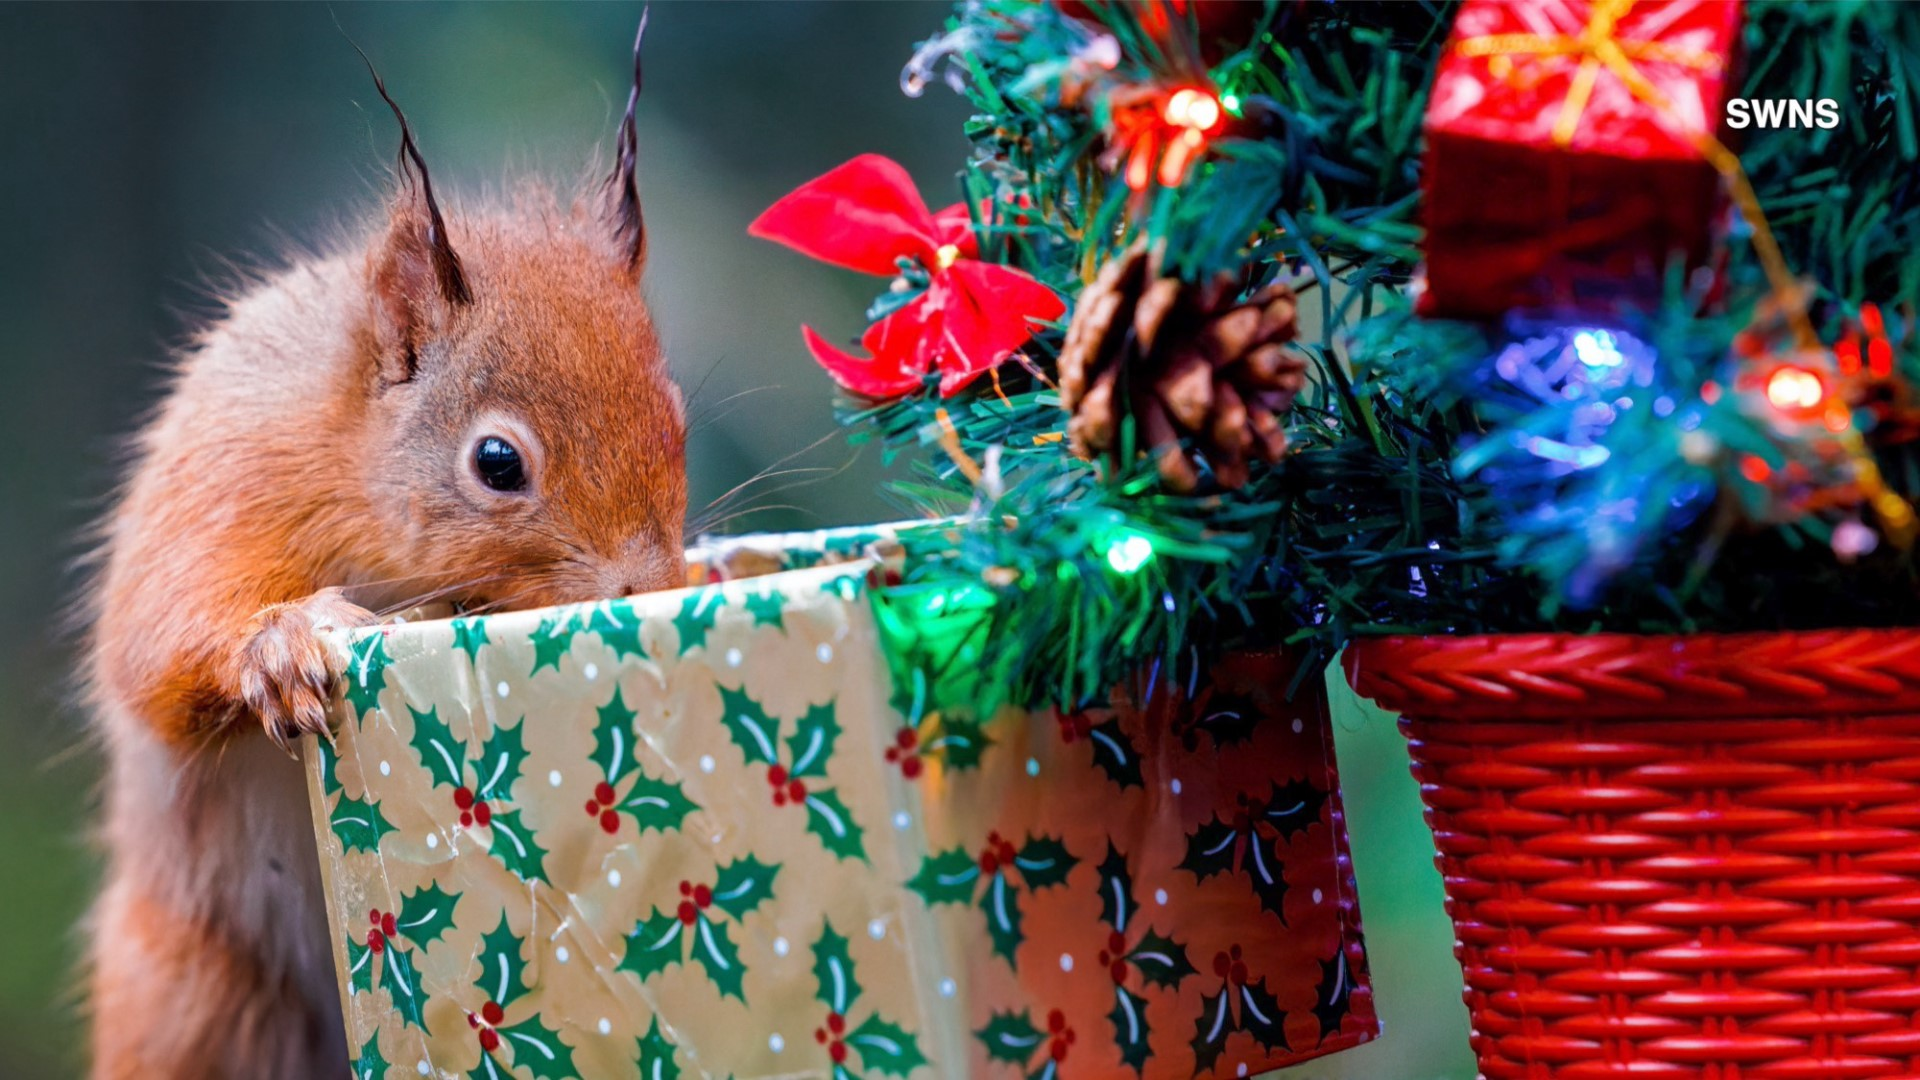 Nutty Christmas Squirrel Caught Opening Gifts Under A Mini Christmas Tree Weareiowa Com